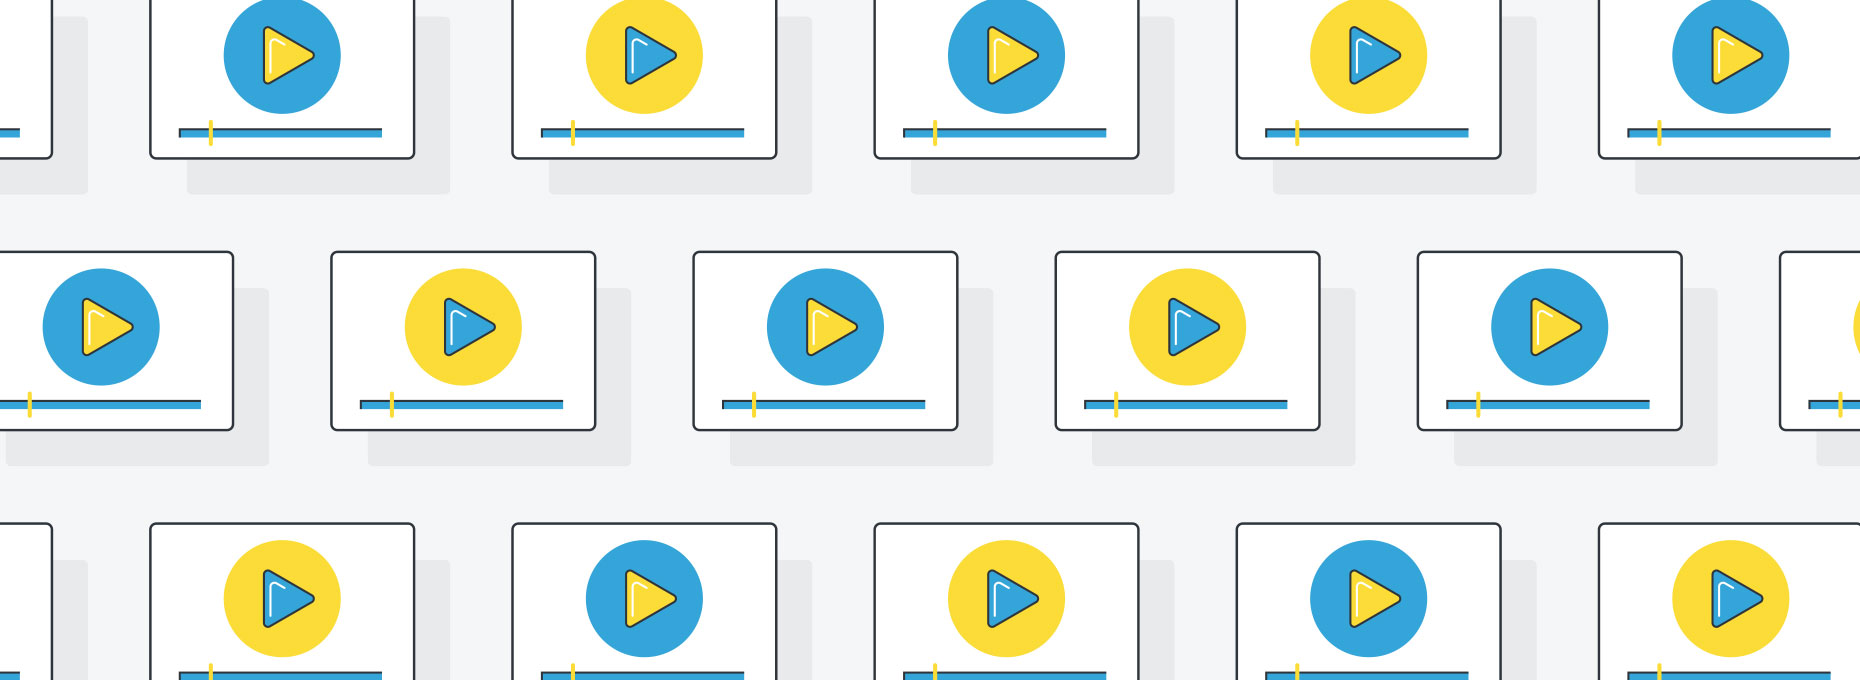 Video graphic image with repeating icons and play buttons